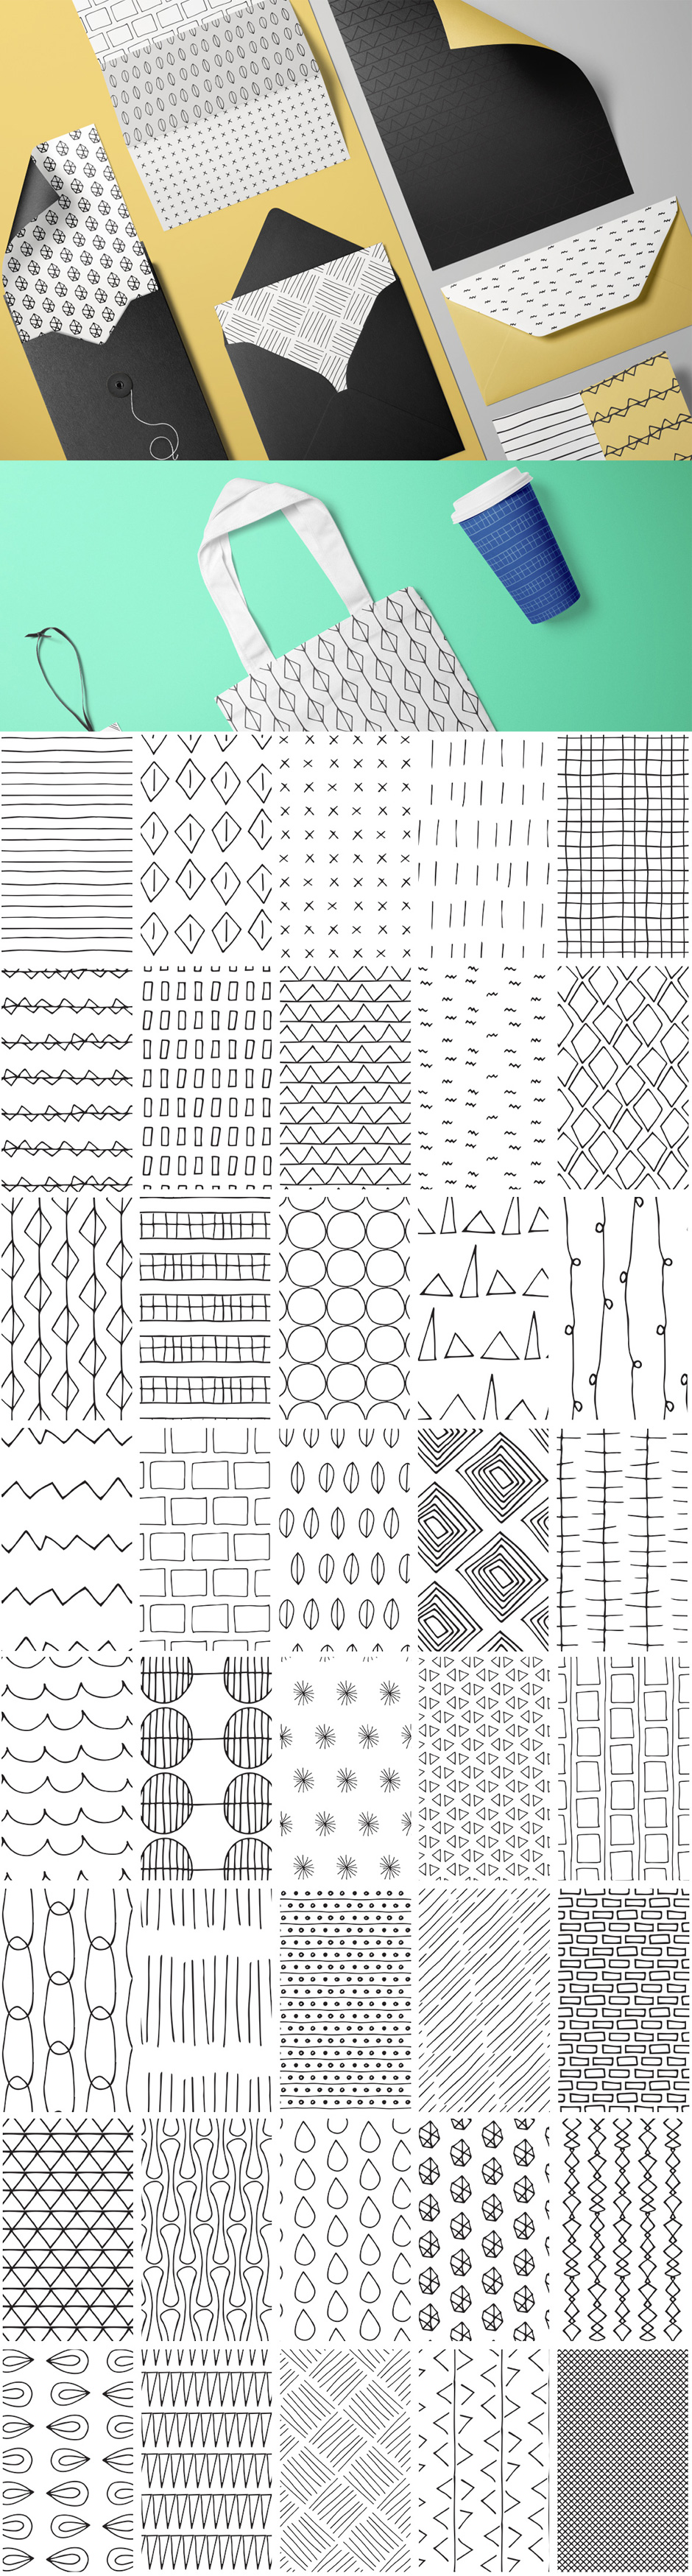 Simple Line Hand-drawn Patterns